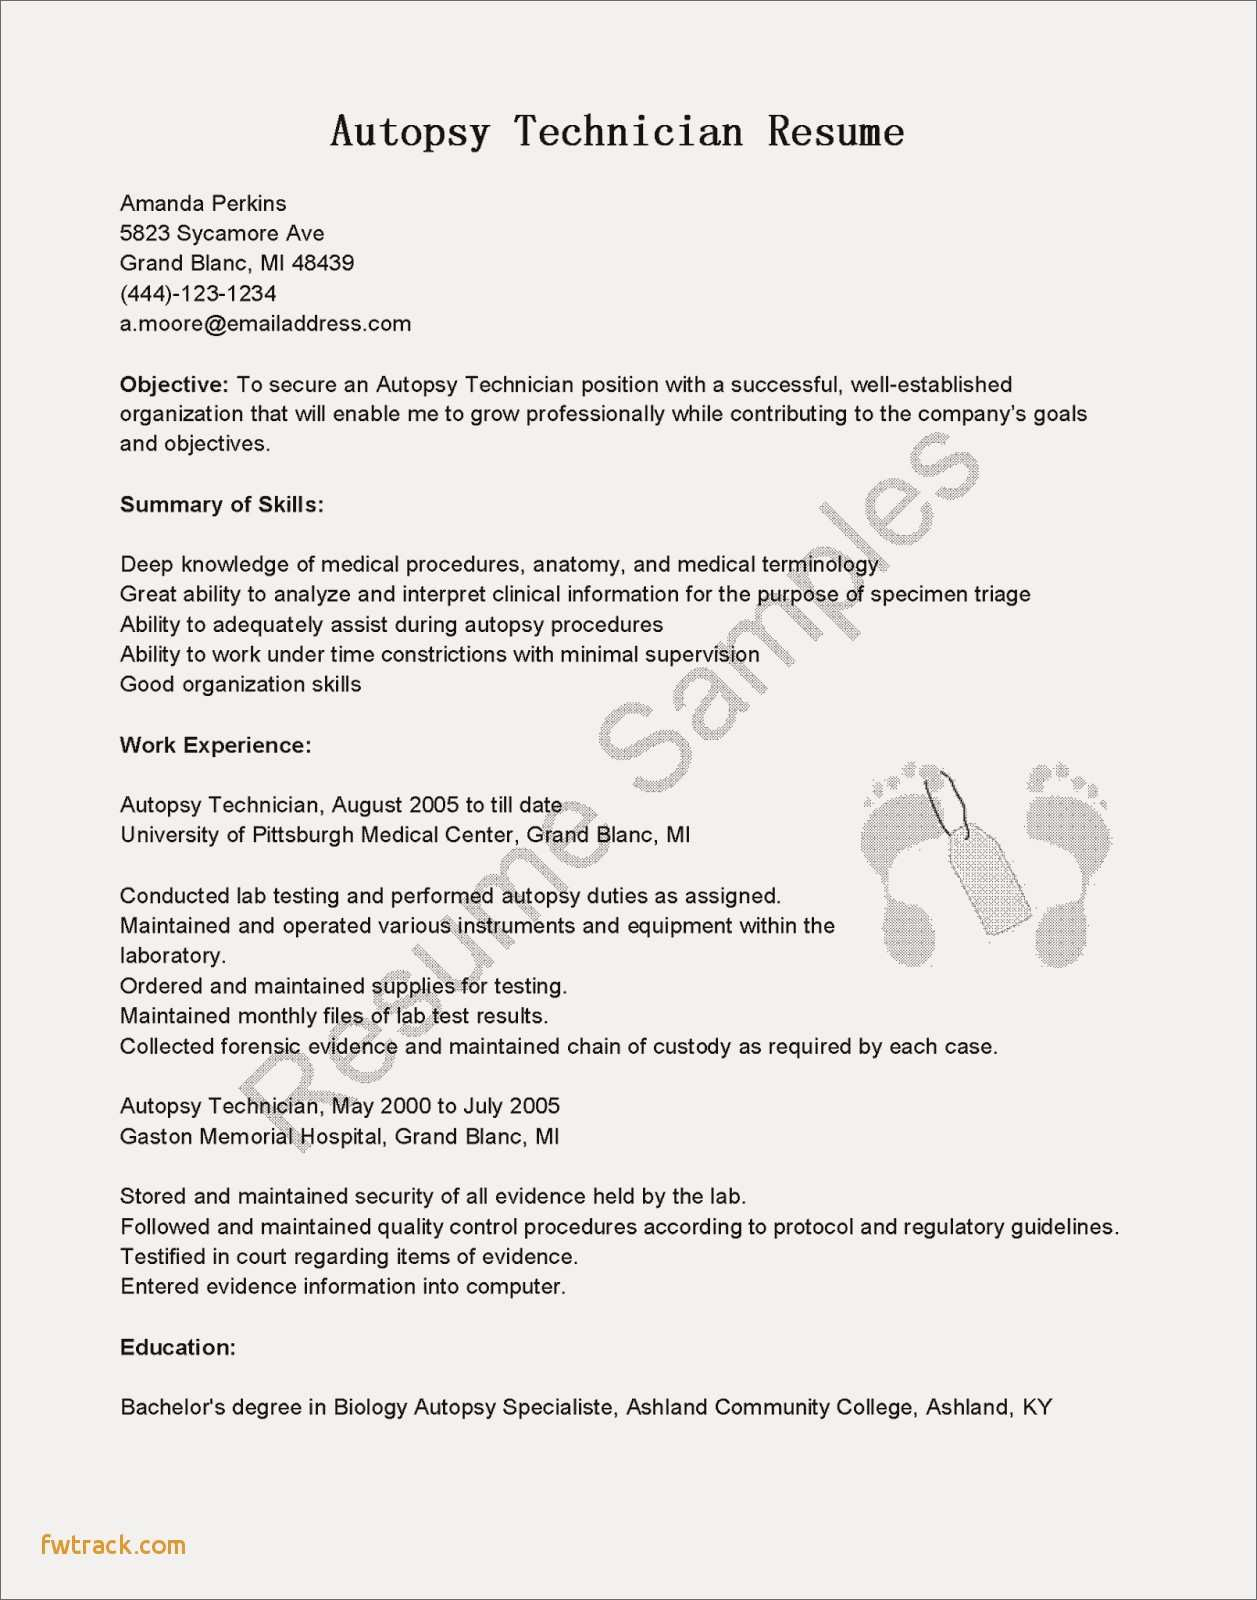 Biology Resume Template - Winning Resume Templates Fwtrack Fwtrack